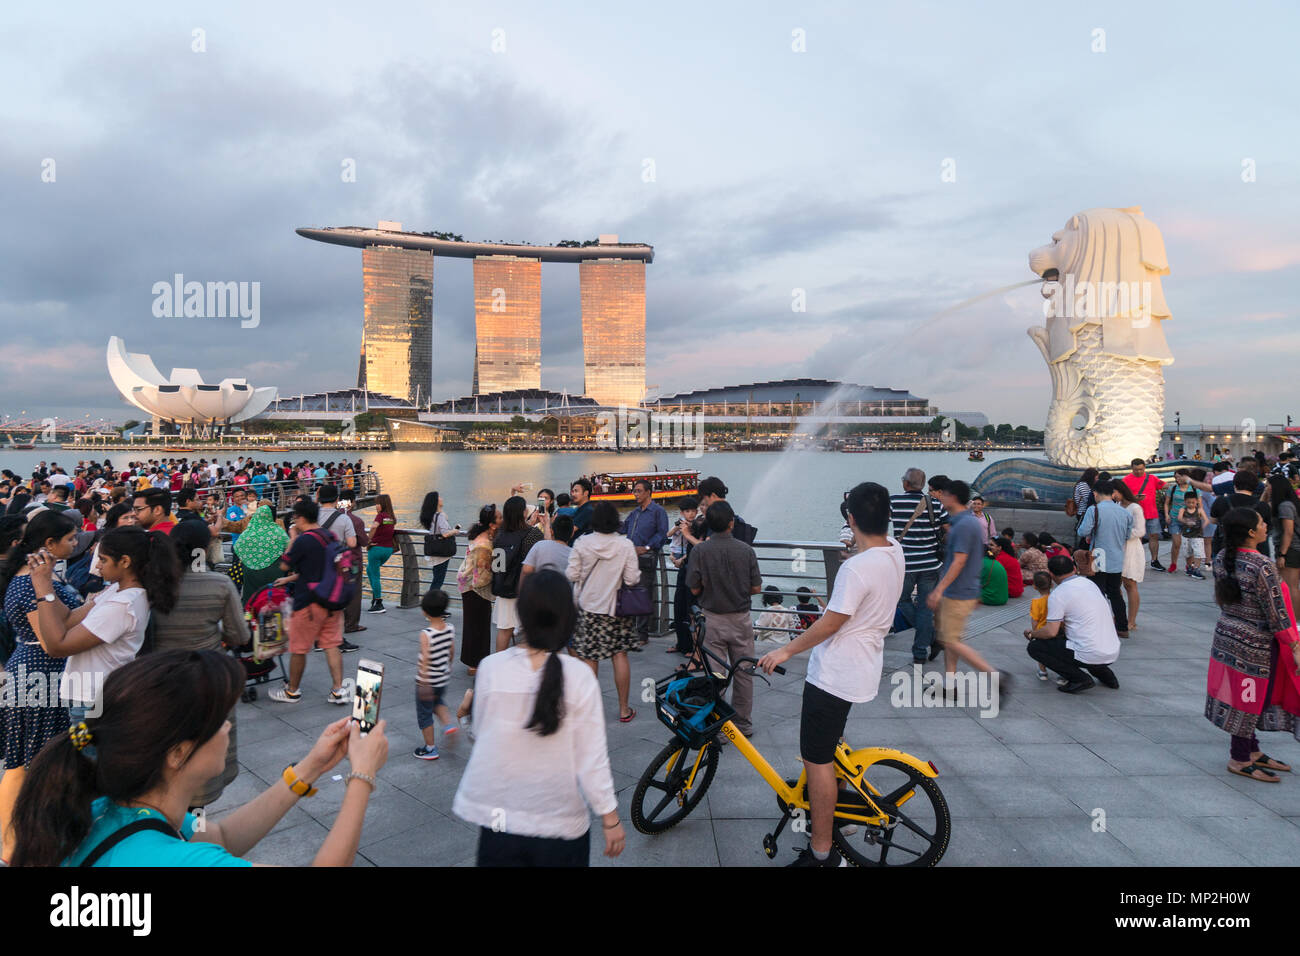 Singapore - May 13 2018: A large crowd of tourists take pictures and selfie in front of the Merlion fountain by the Marina Bay at sunset in Singapore  - Stock Image